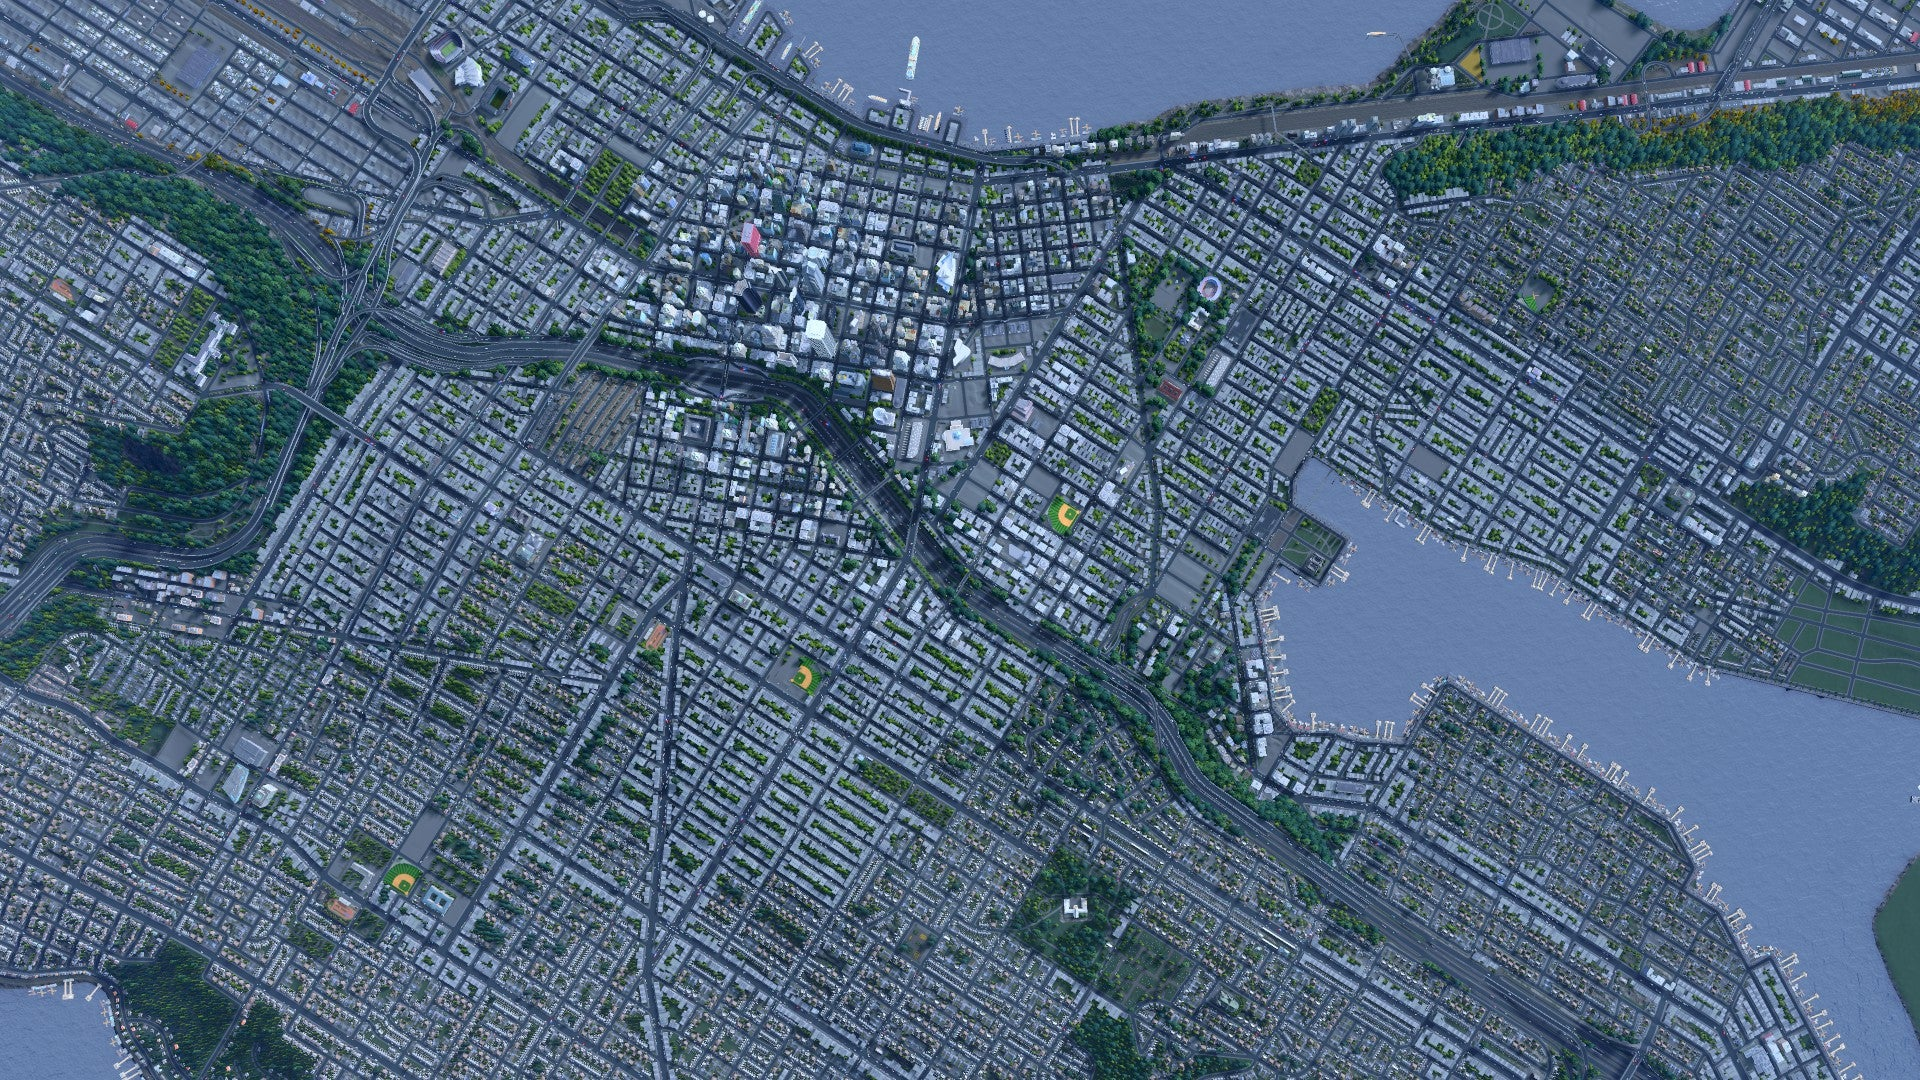 cities-skylines paradox seattle